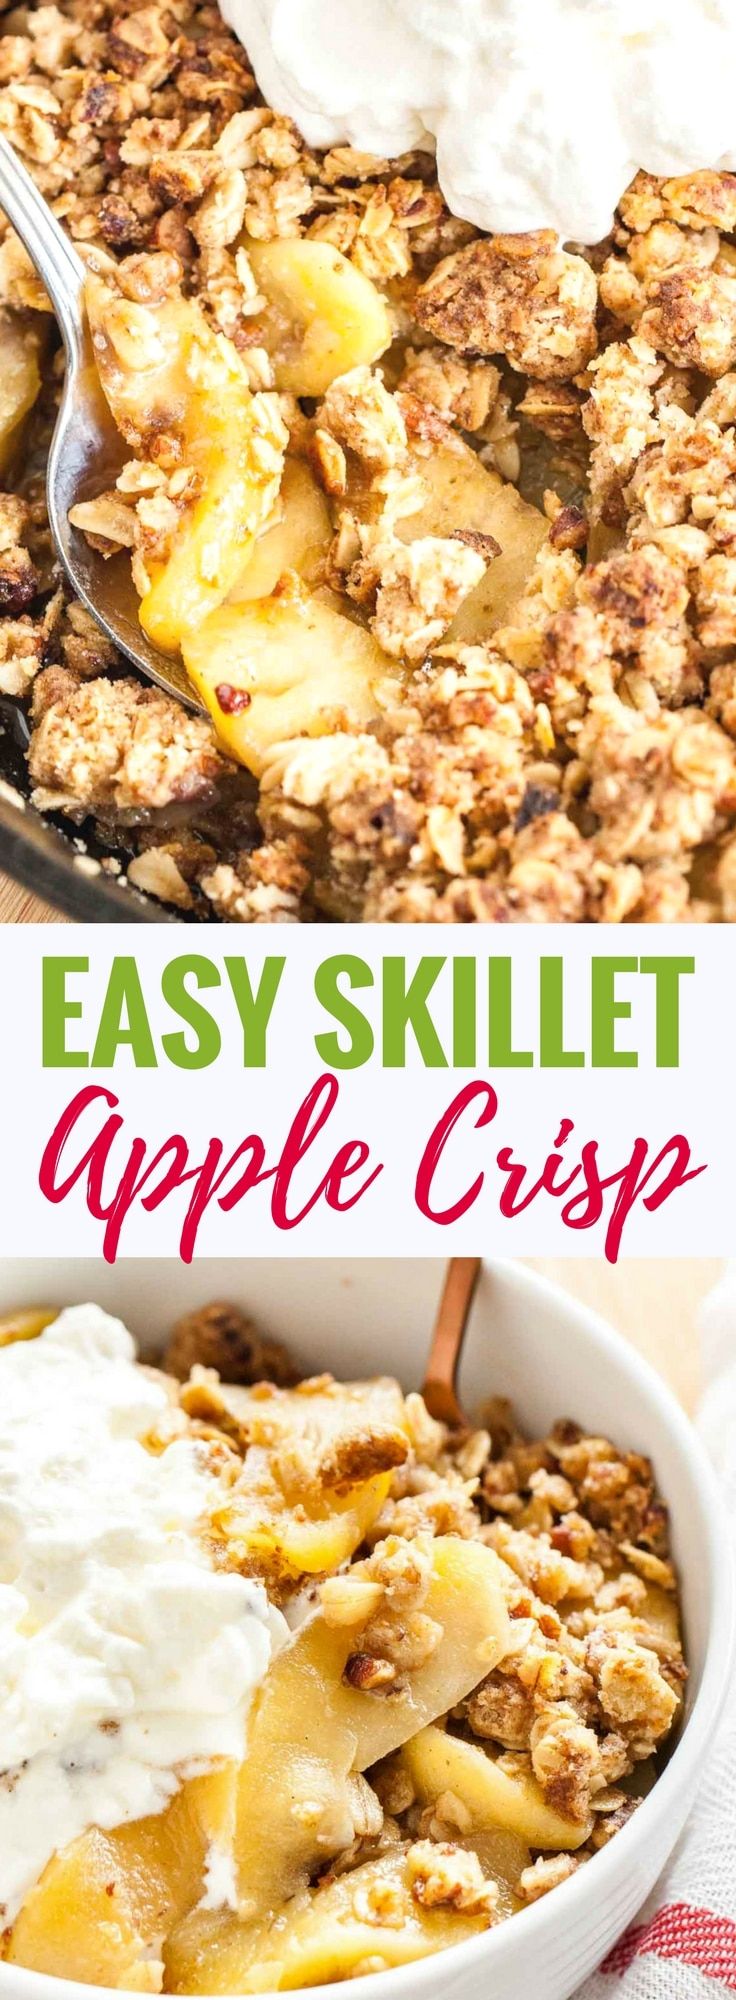 This easy Skillet Apple Crisp topped with a big scoop of vanilla ice cream will become your favorite fall dessert! Perfectly cooked apples and a crunchy brown sugar oatmeal topping come together in this easy and flavorful recipe that is always a hit. This apple crumble is perfect for the holidays!